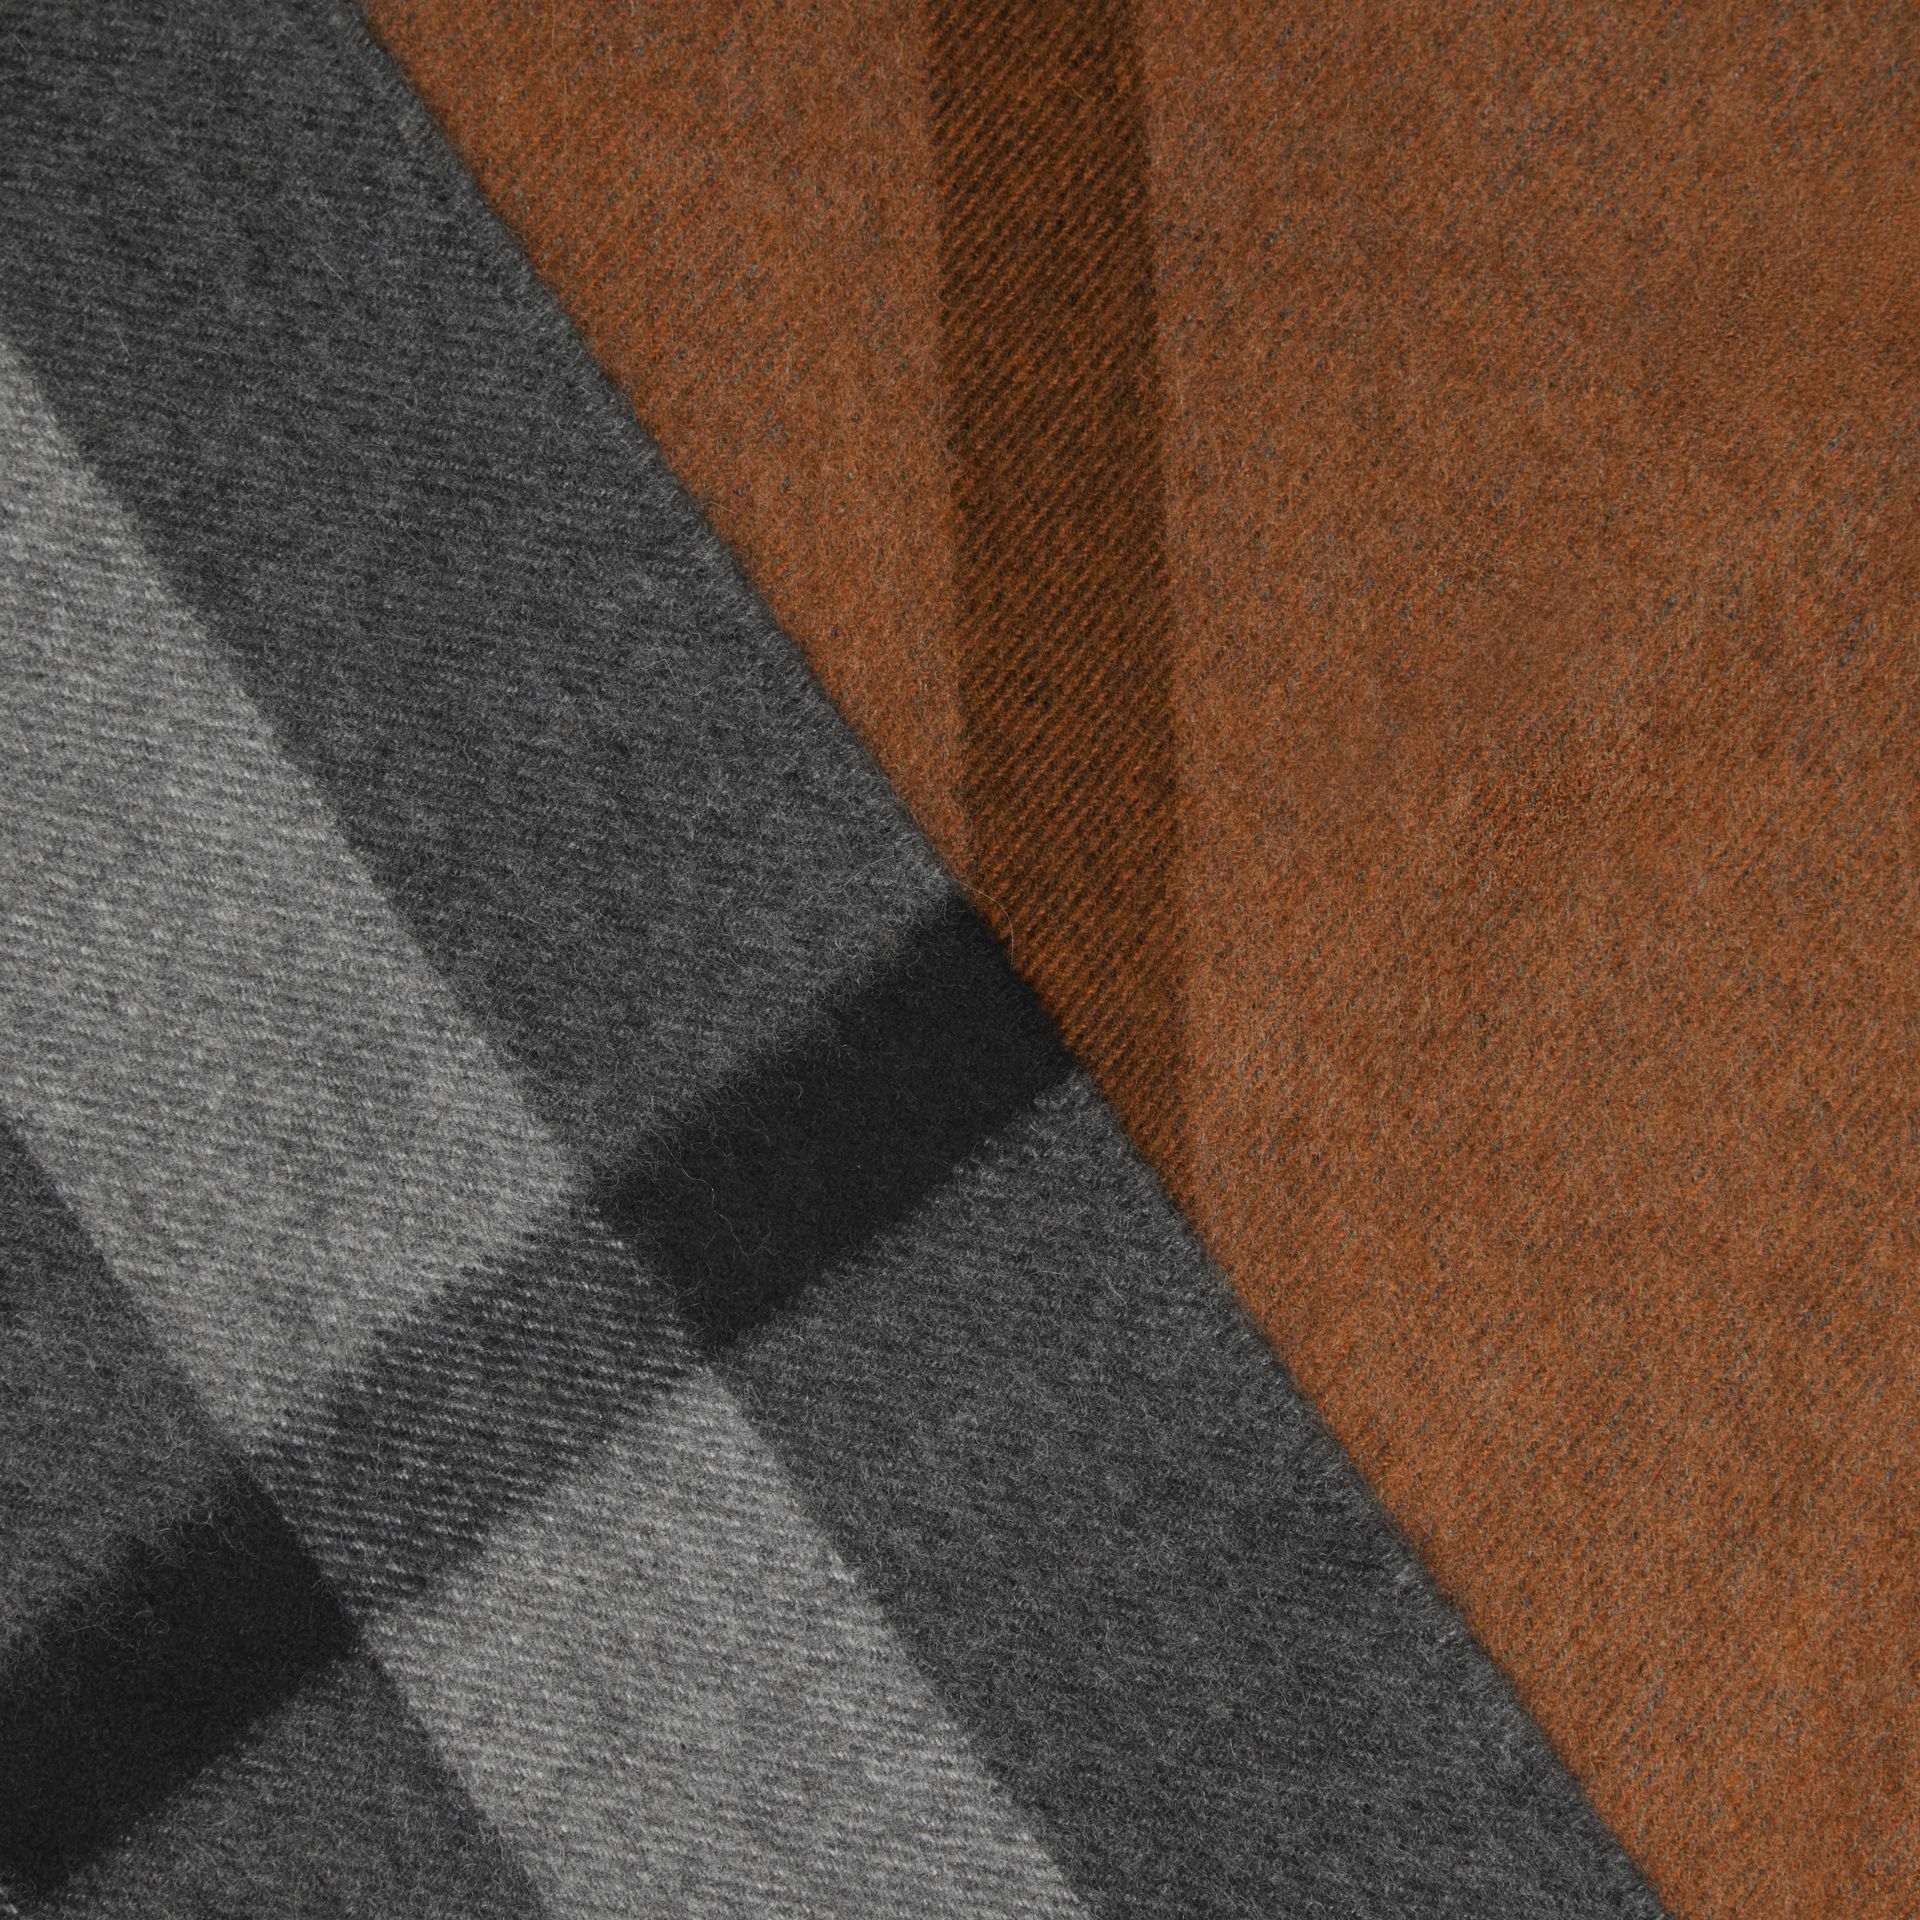 Colour Block Check Cashmere Scarf in Toffee | Burberry United Kingdom - gallery image 1